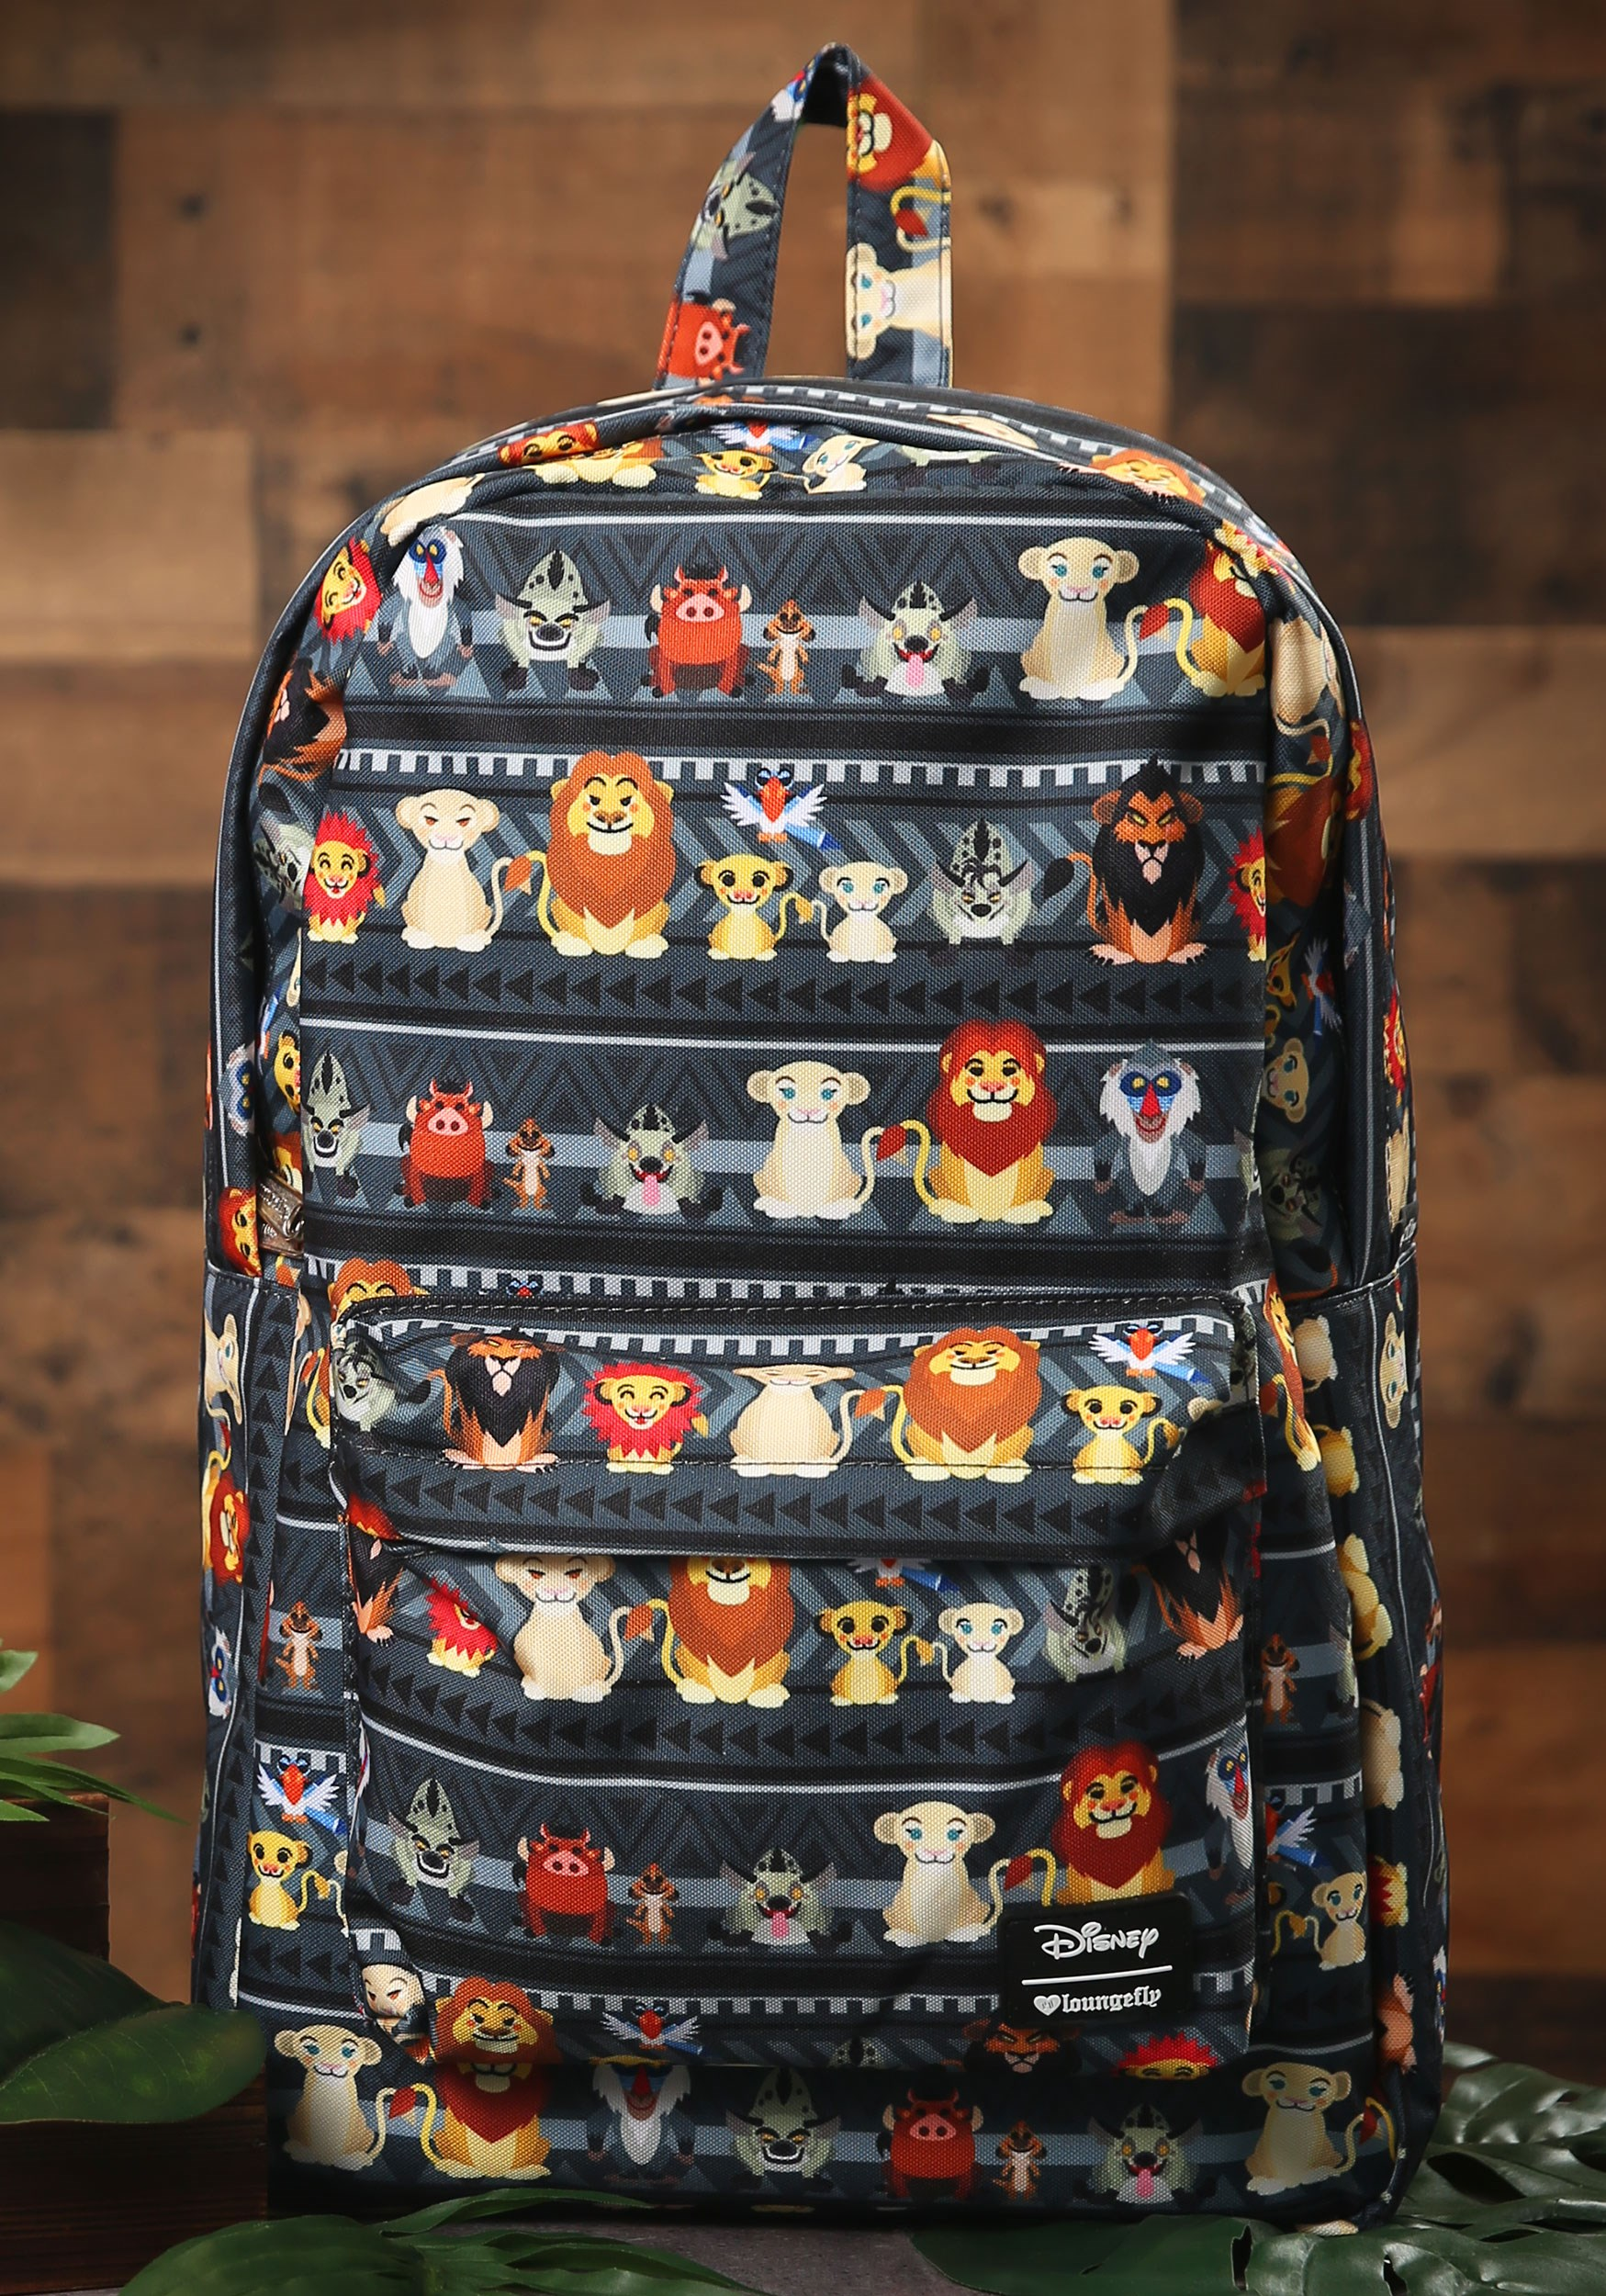 62582119dd4 Disney s The Lion King Characters Loungefly Printm Backpack